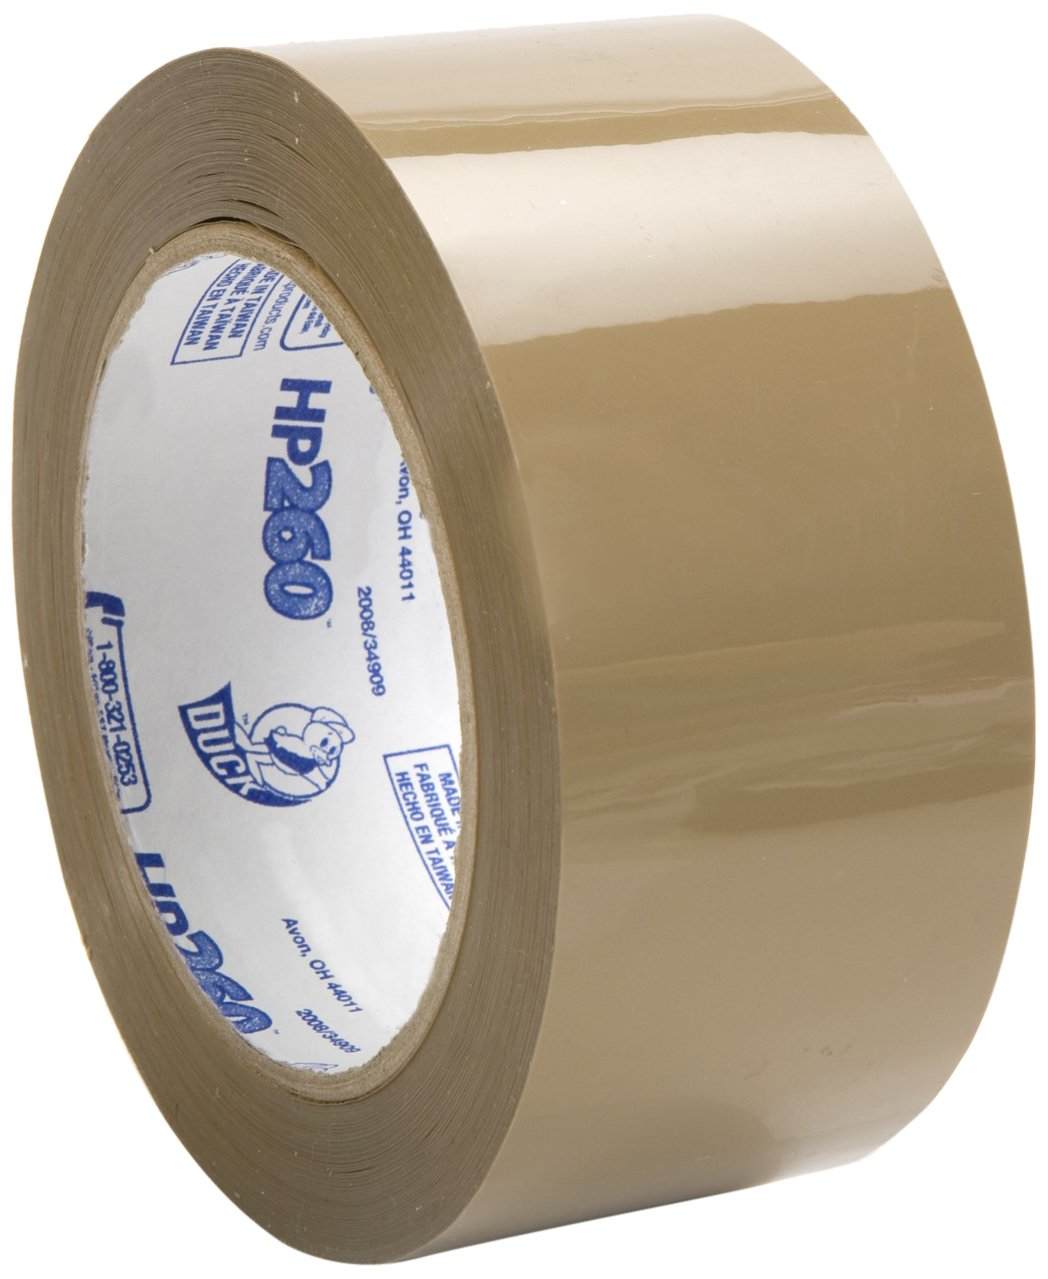 Duck Brand HP260 High Performance 3.1 Mil Packaging Tape, 1.88-Inch x 60-Yard, Tan, Case of 36 Rolls (299009)